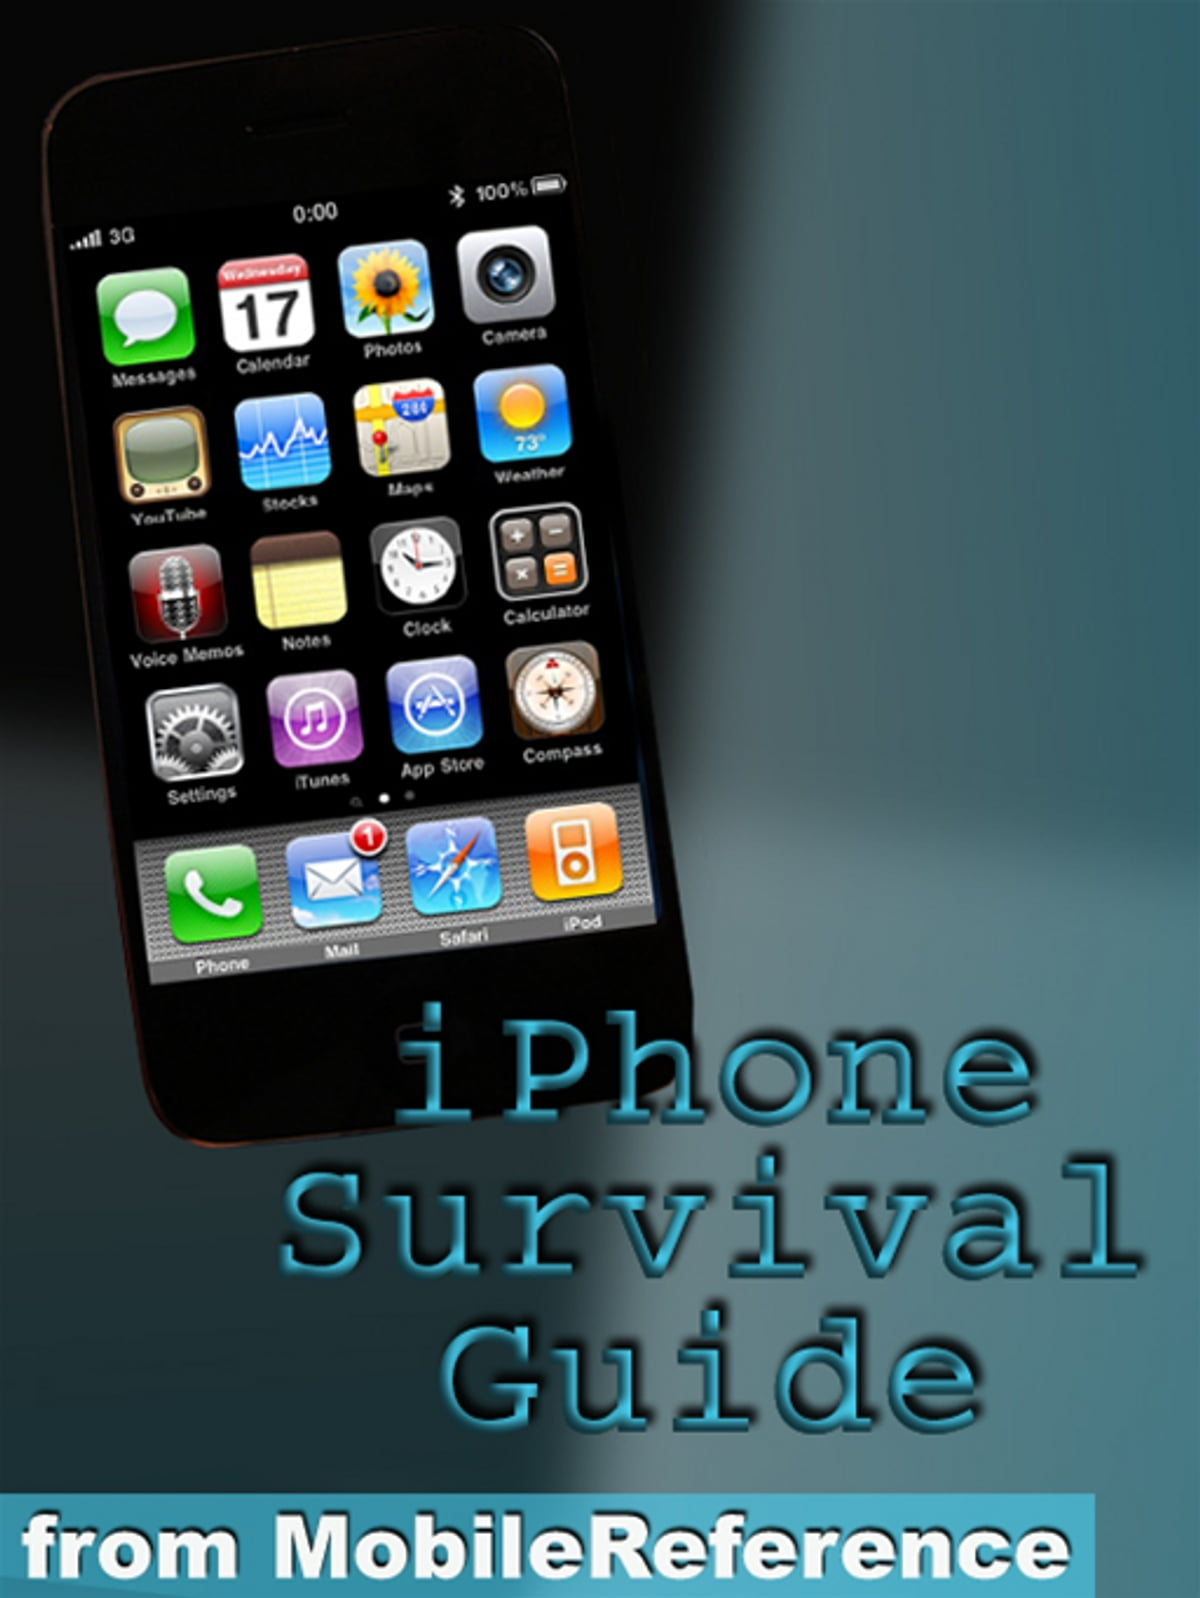 iphone 3gs instruction manual download